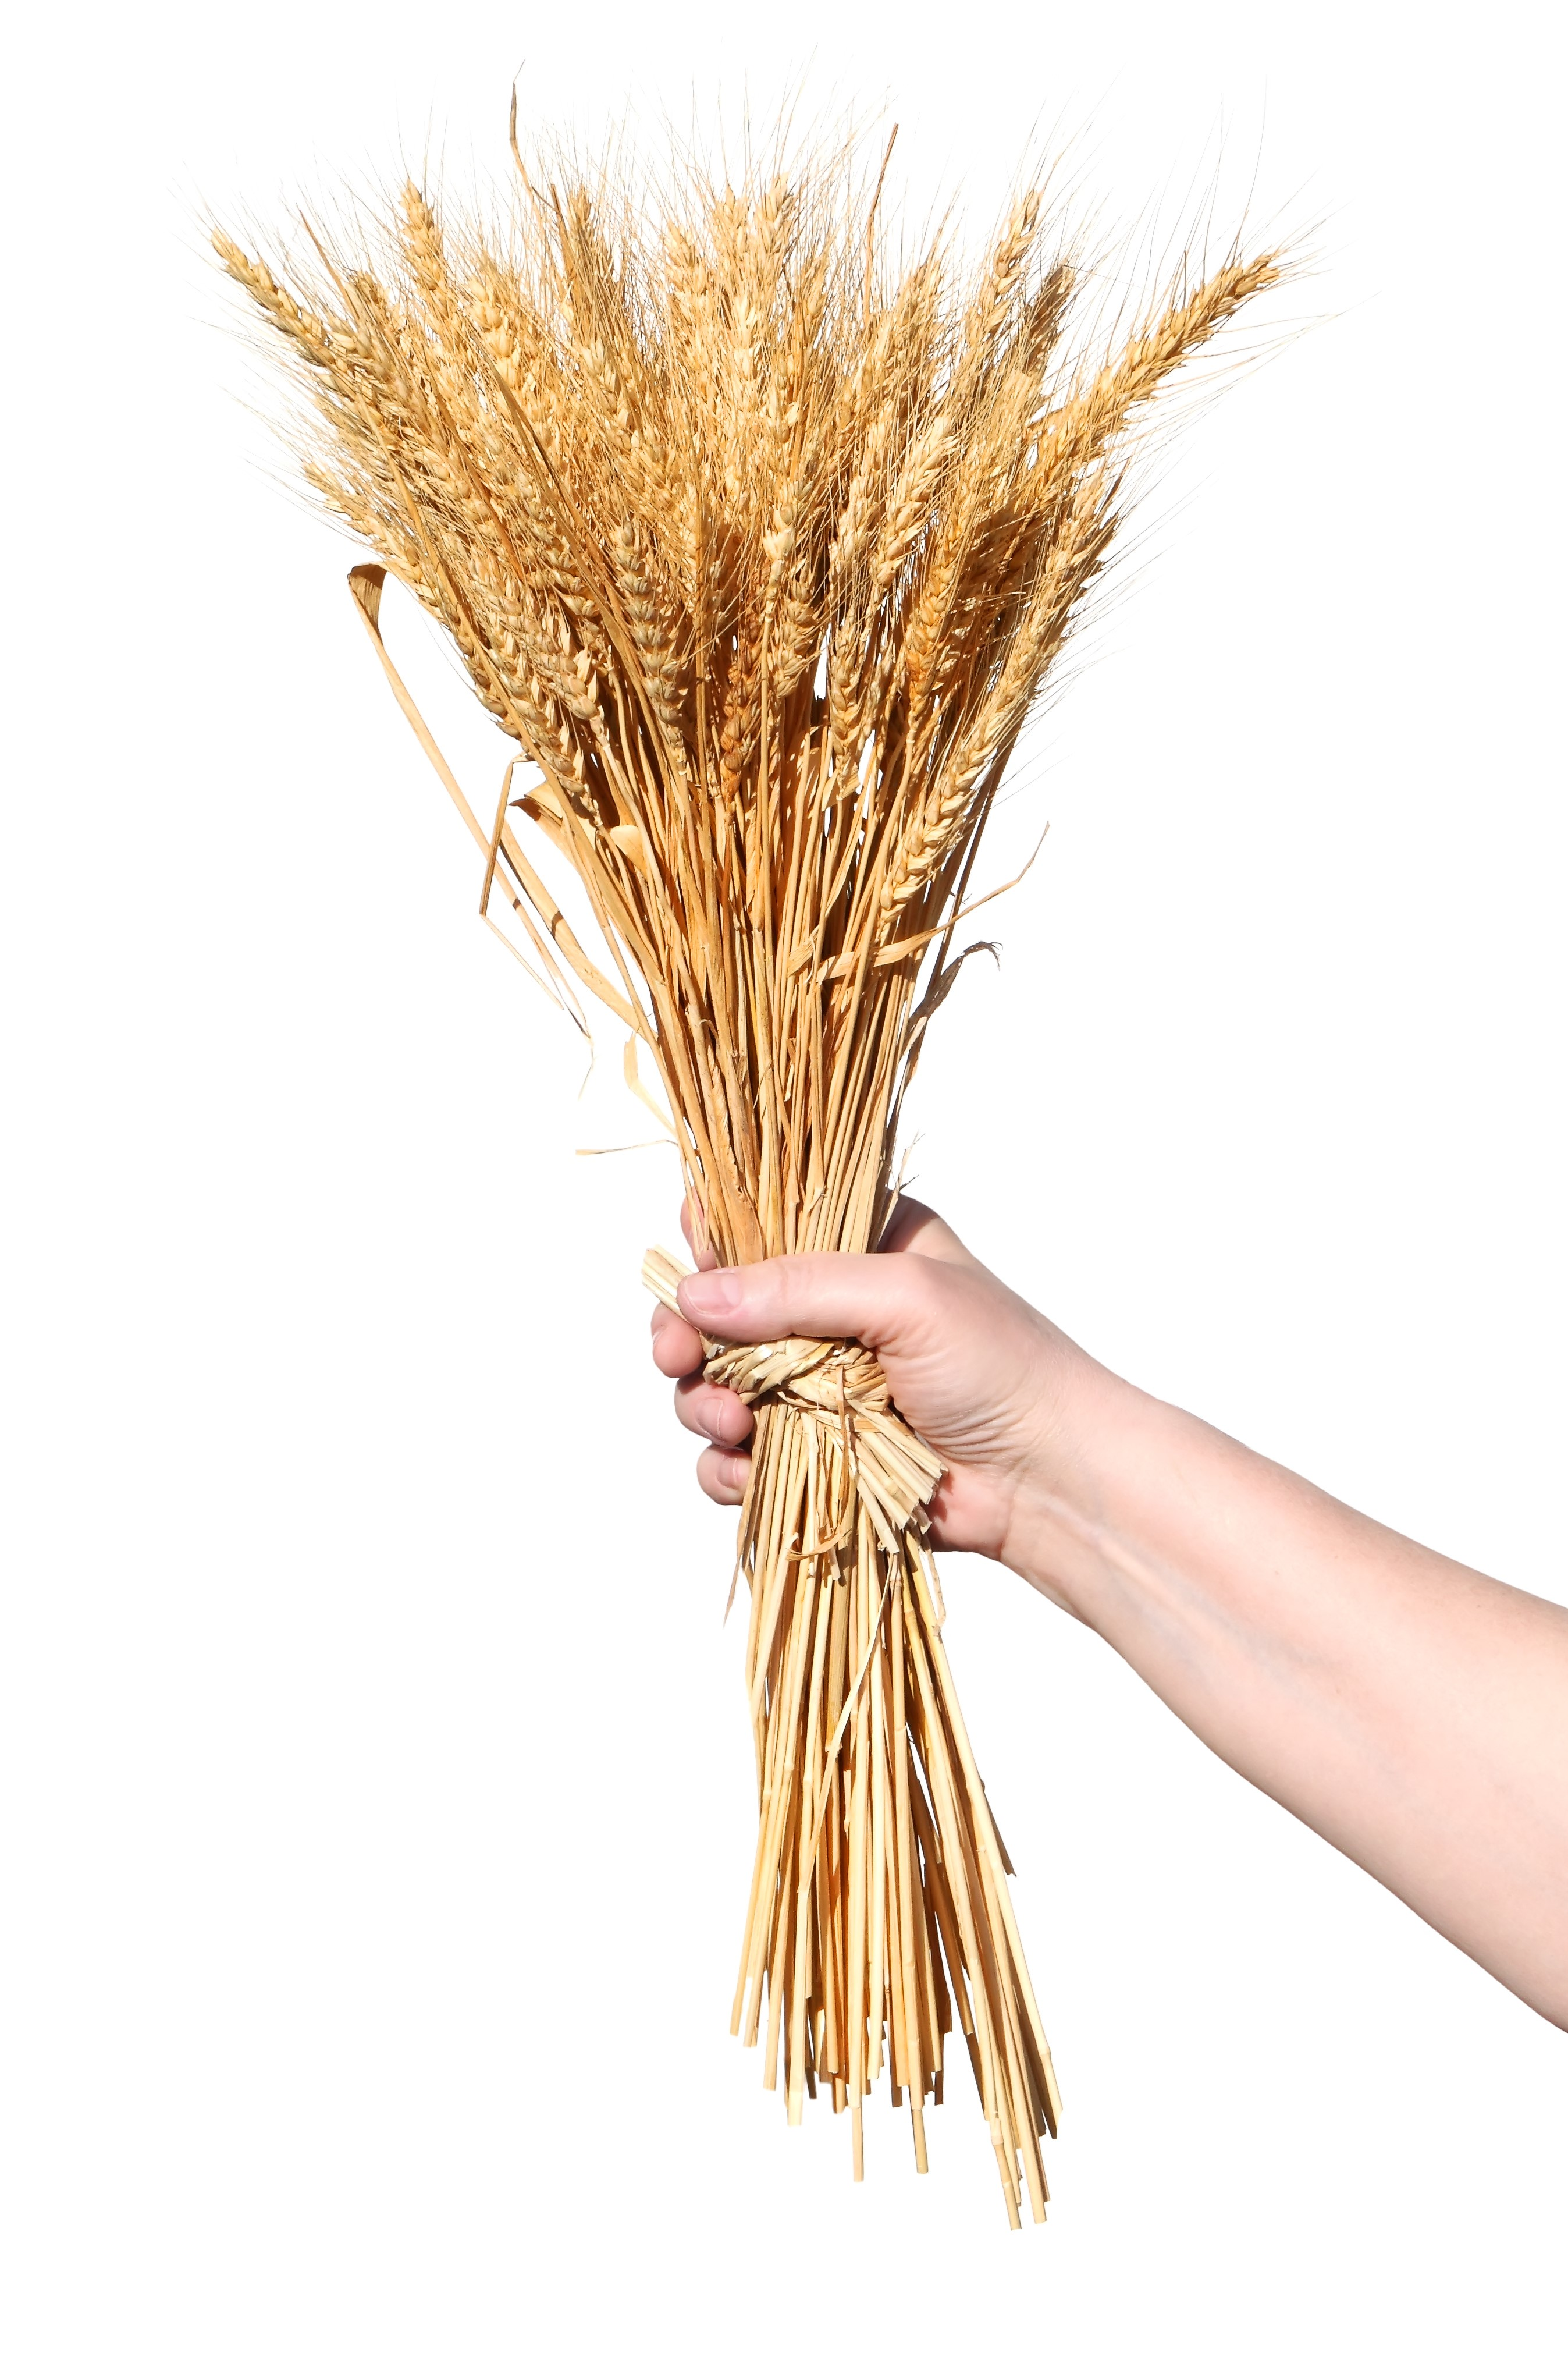 The Seven Species Barley And Wheat